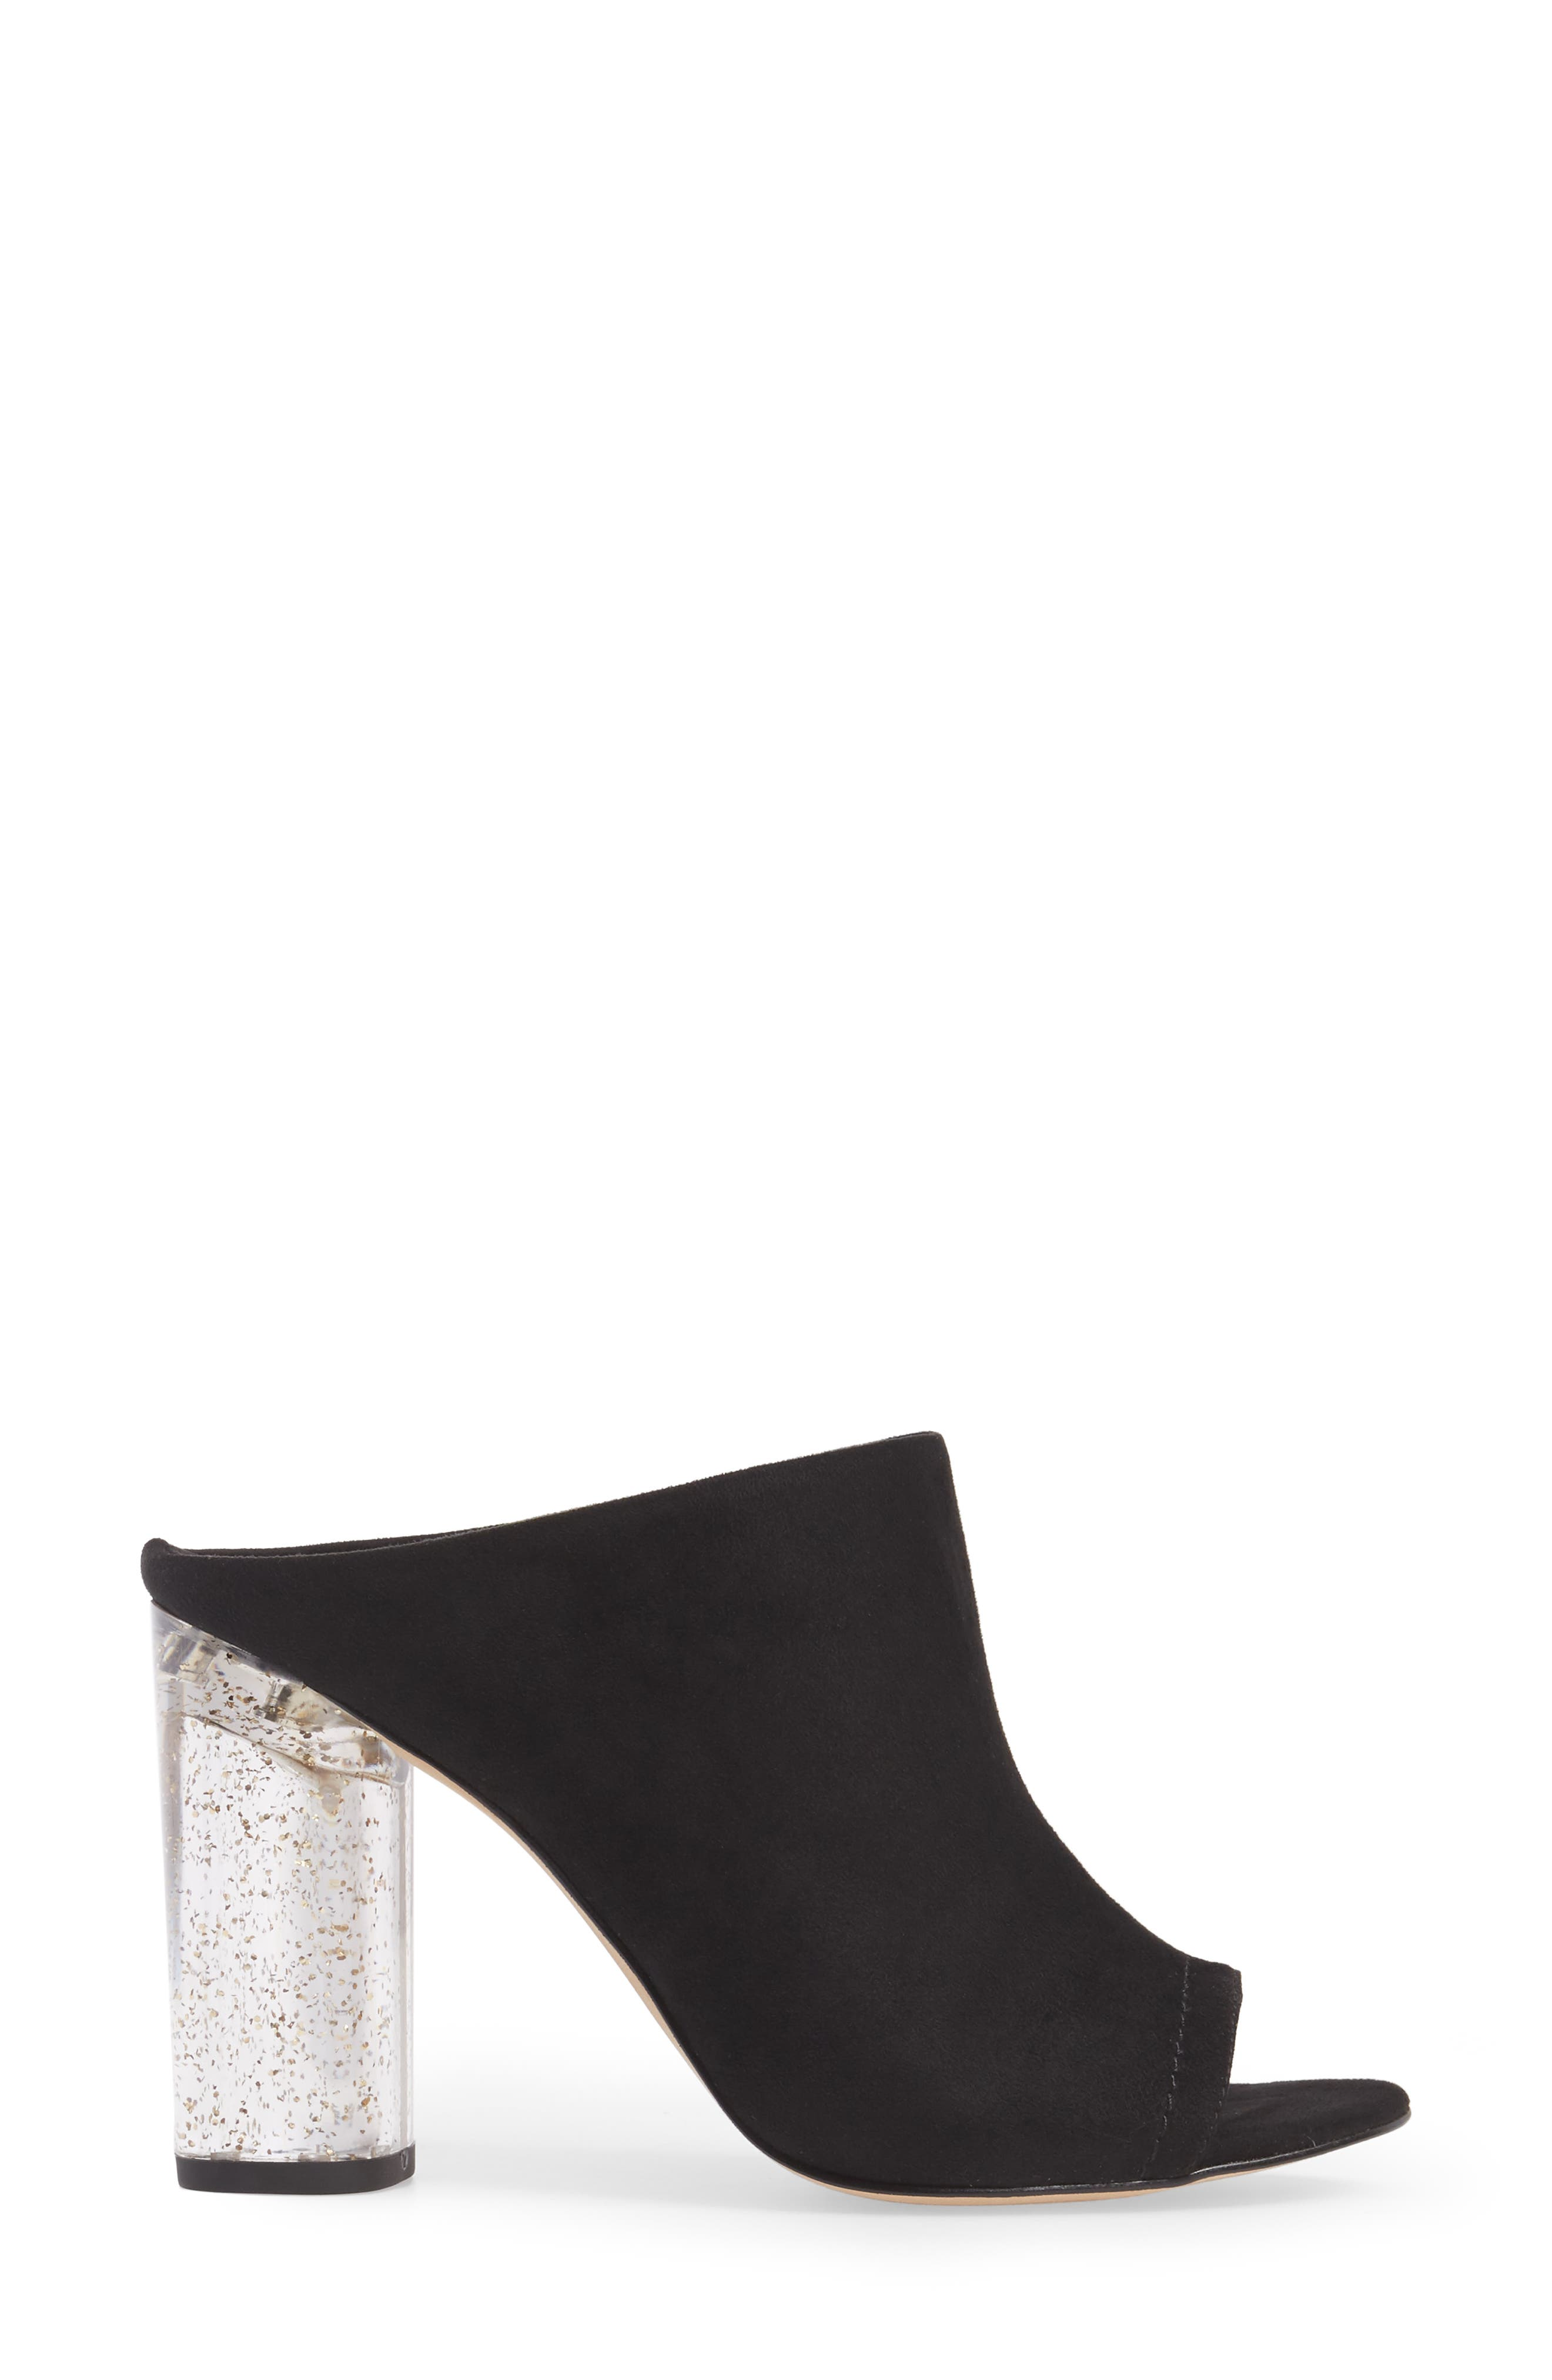 Renee Block Heel Mule,                             Alternate thumbnail 3, color,                             001